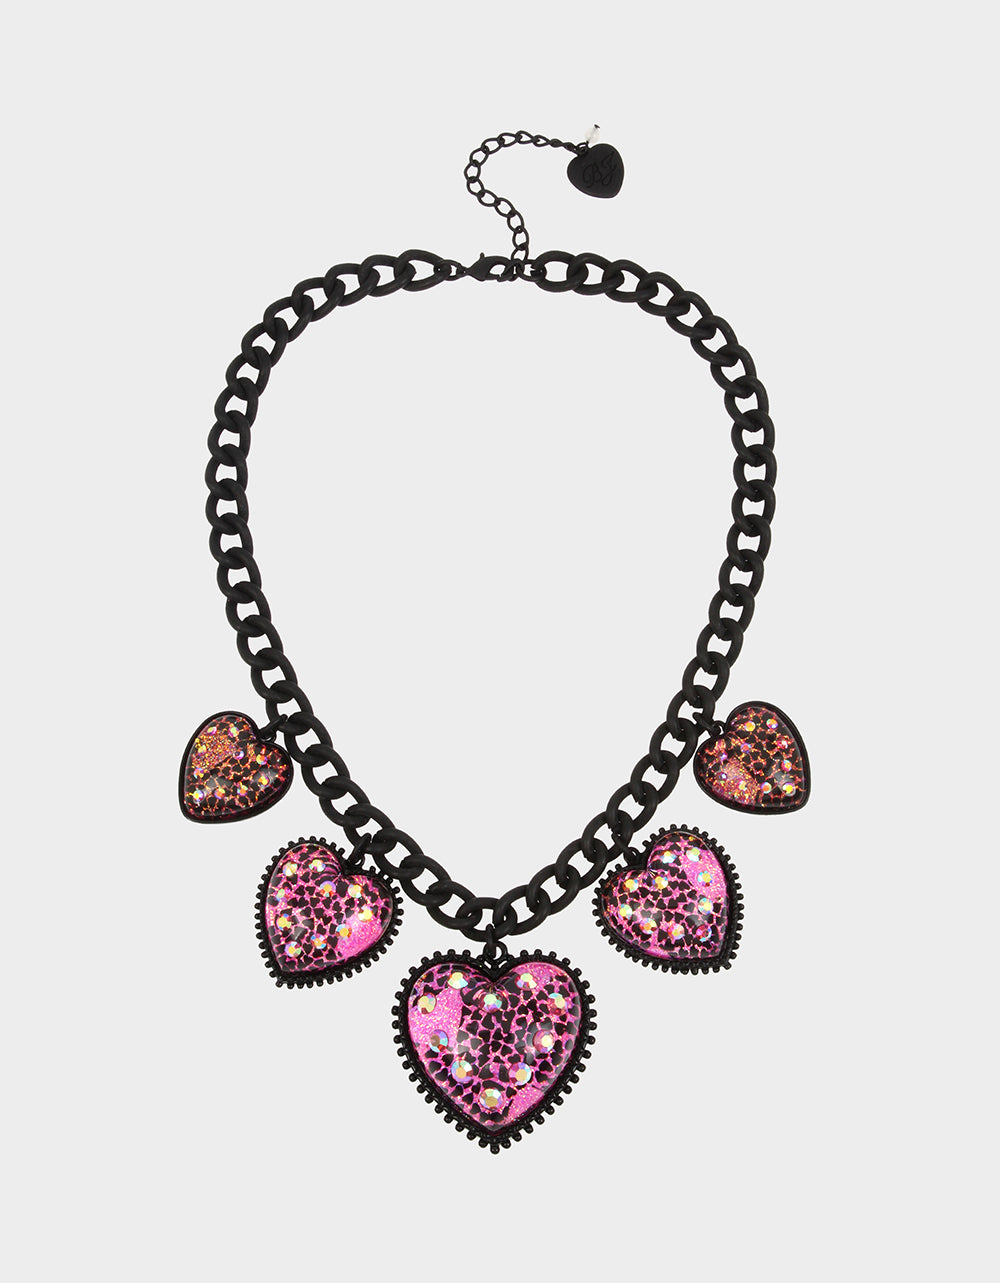 XOX GLITTER HEARTS NECKLACE FUCHSIA - JEWELRY - Betsey Johnson